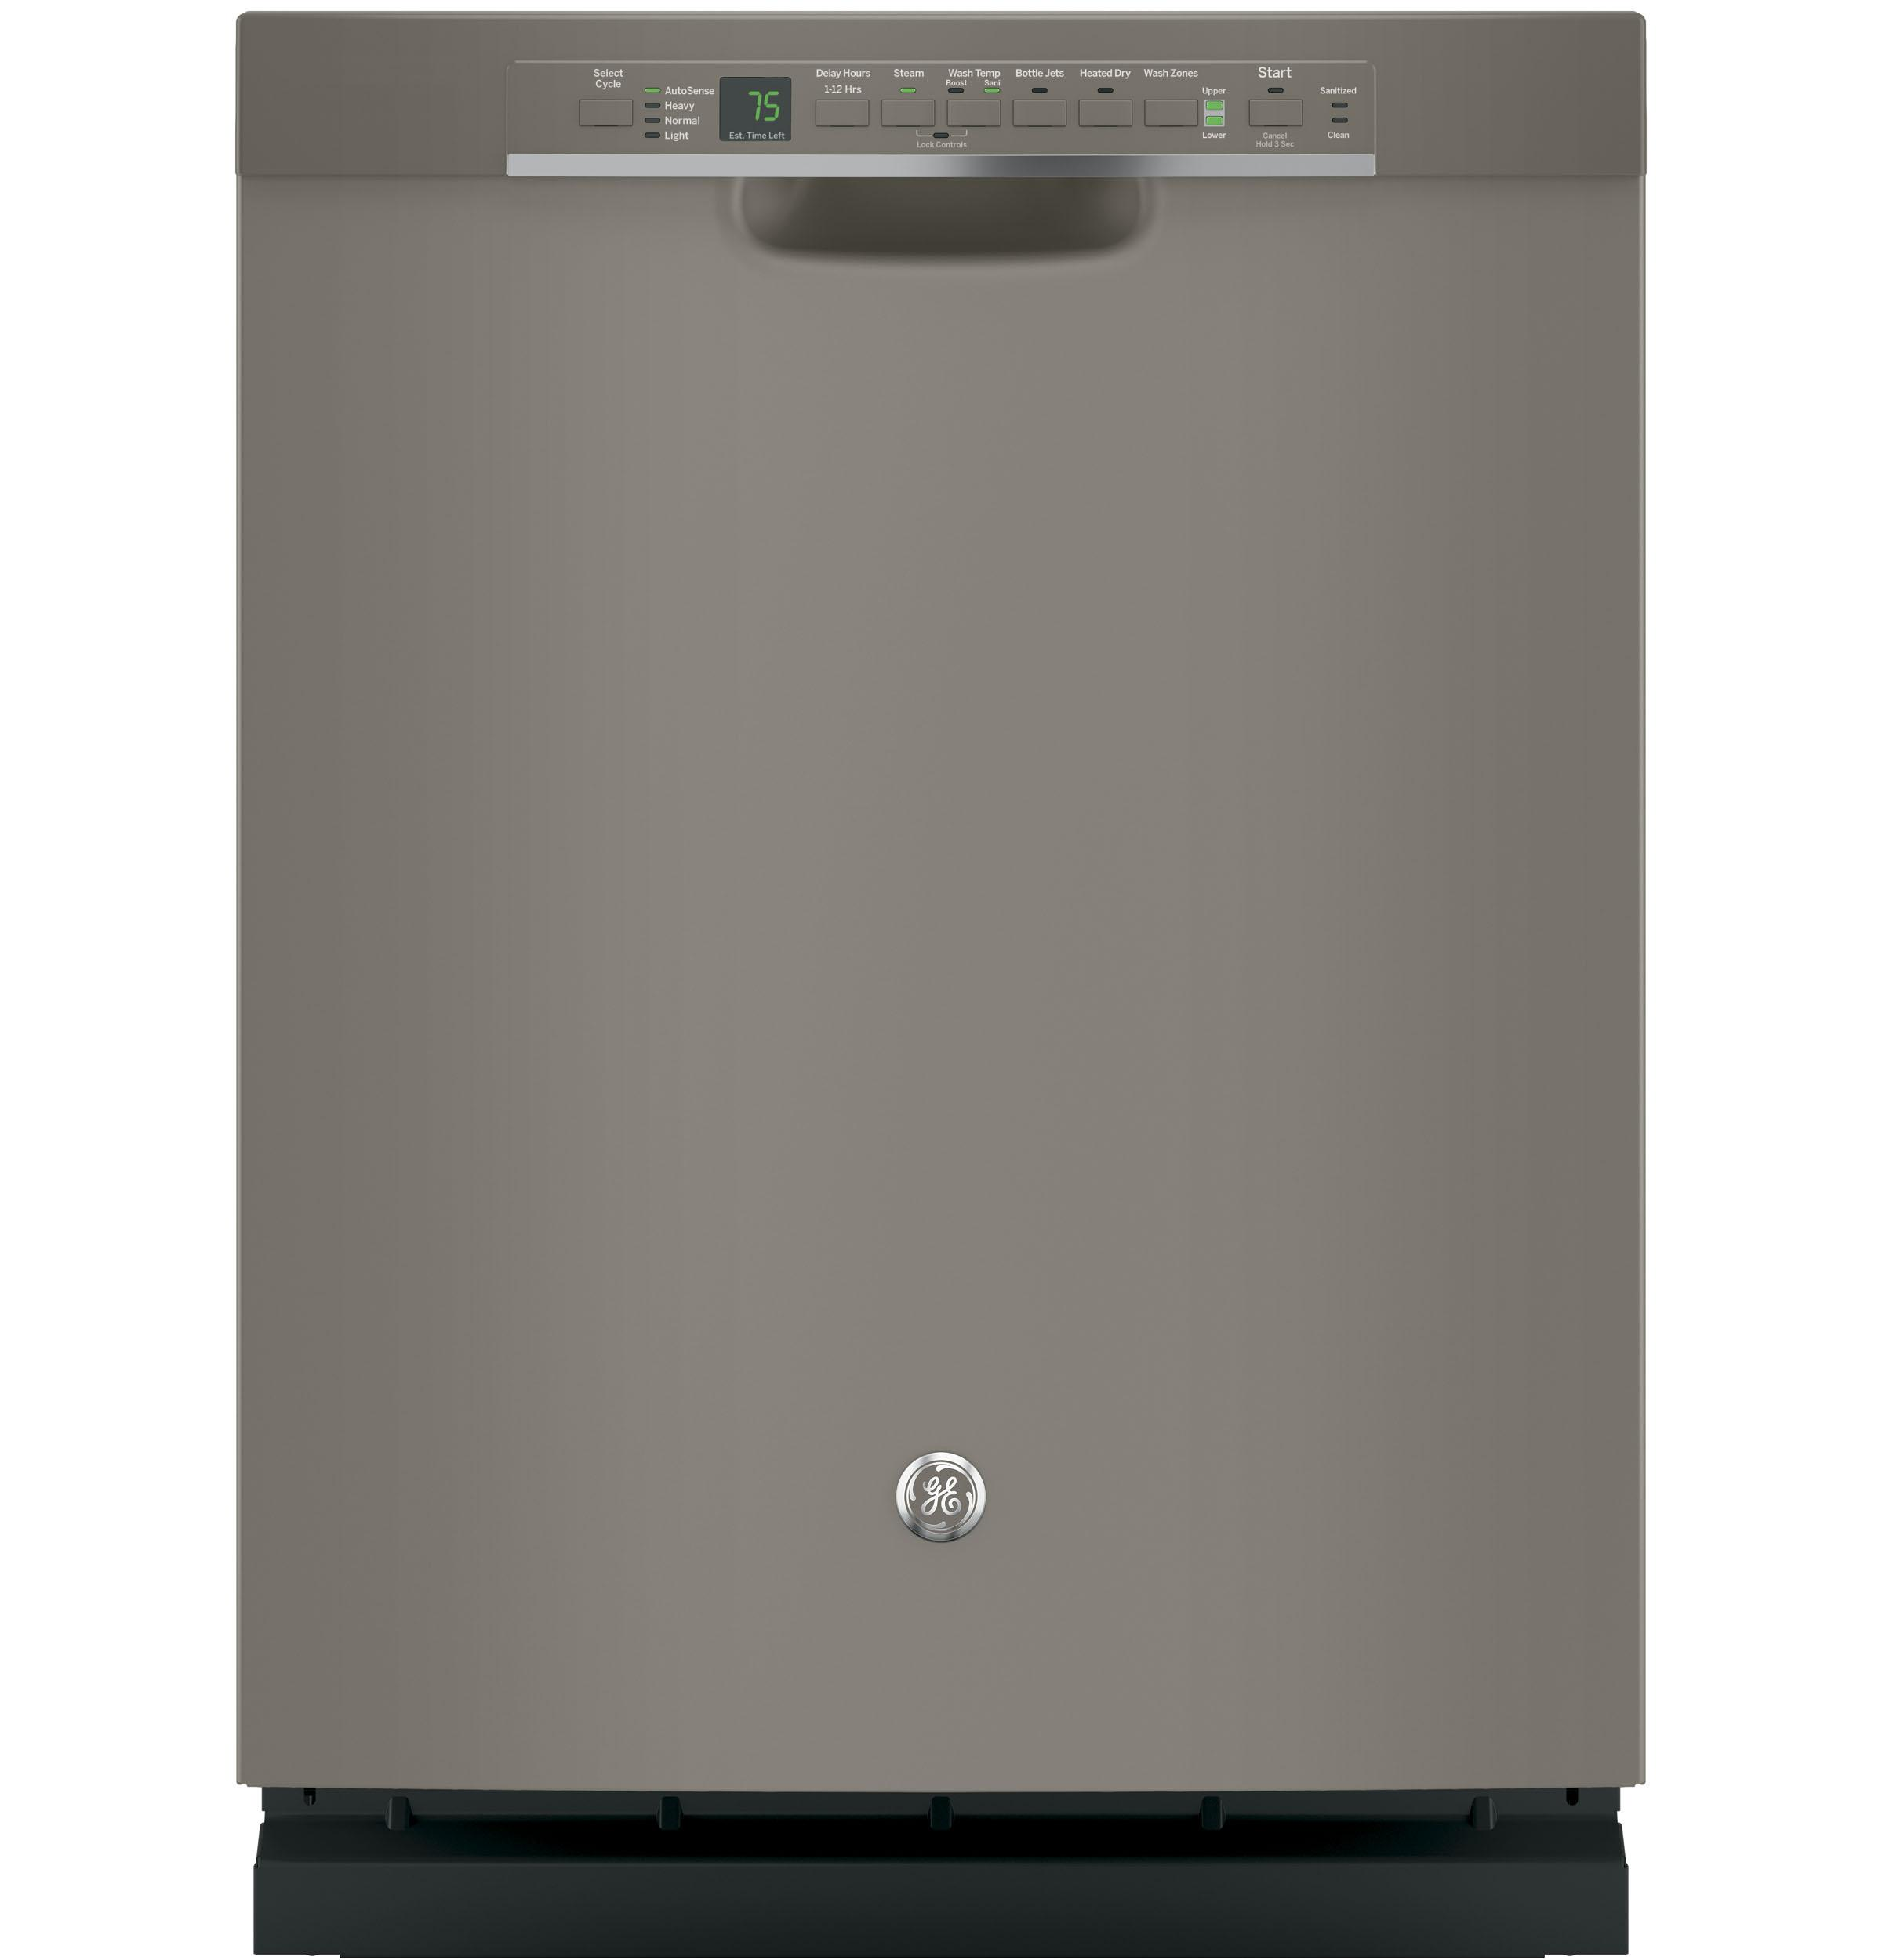 Ge Stainless Steel Interior Dishwasher With Front Controls Built In Dishwashers Dishwashers